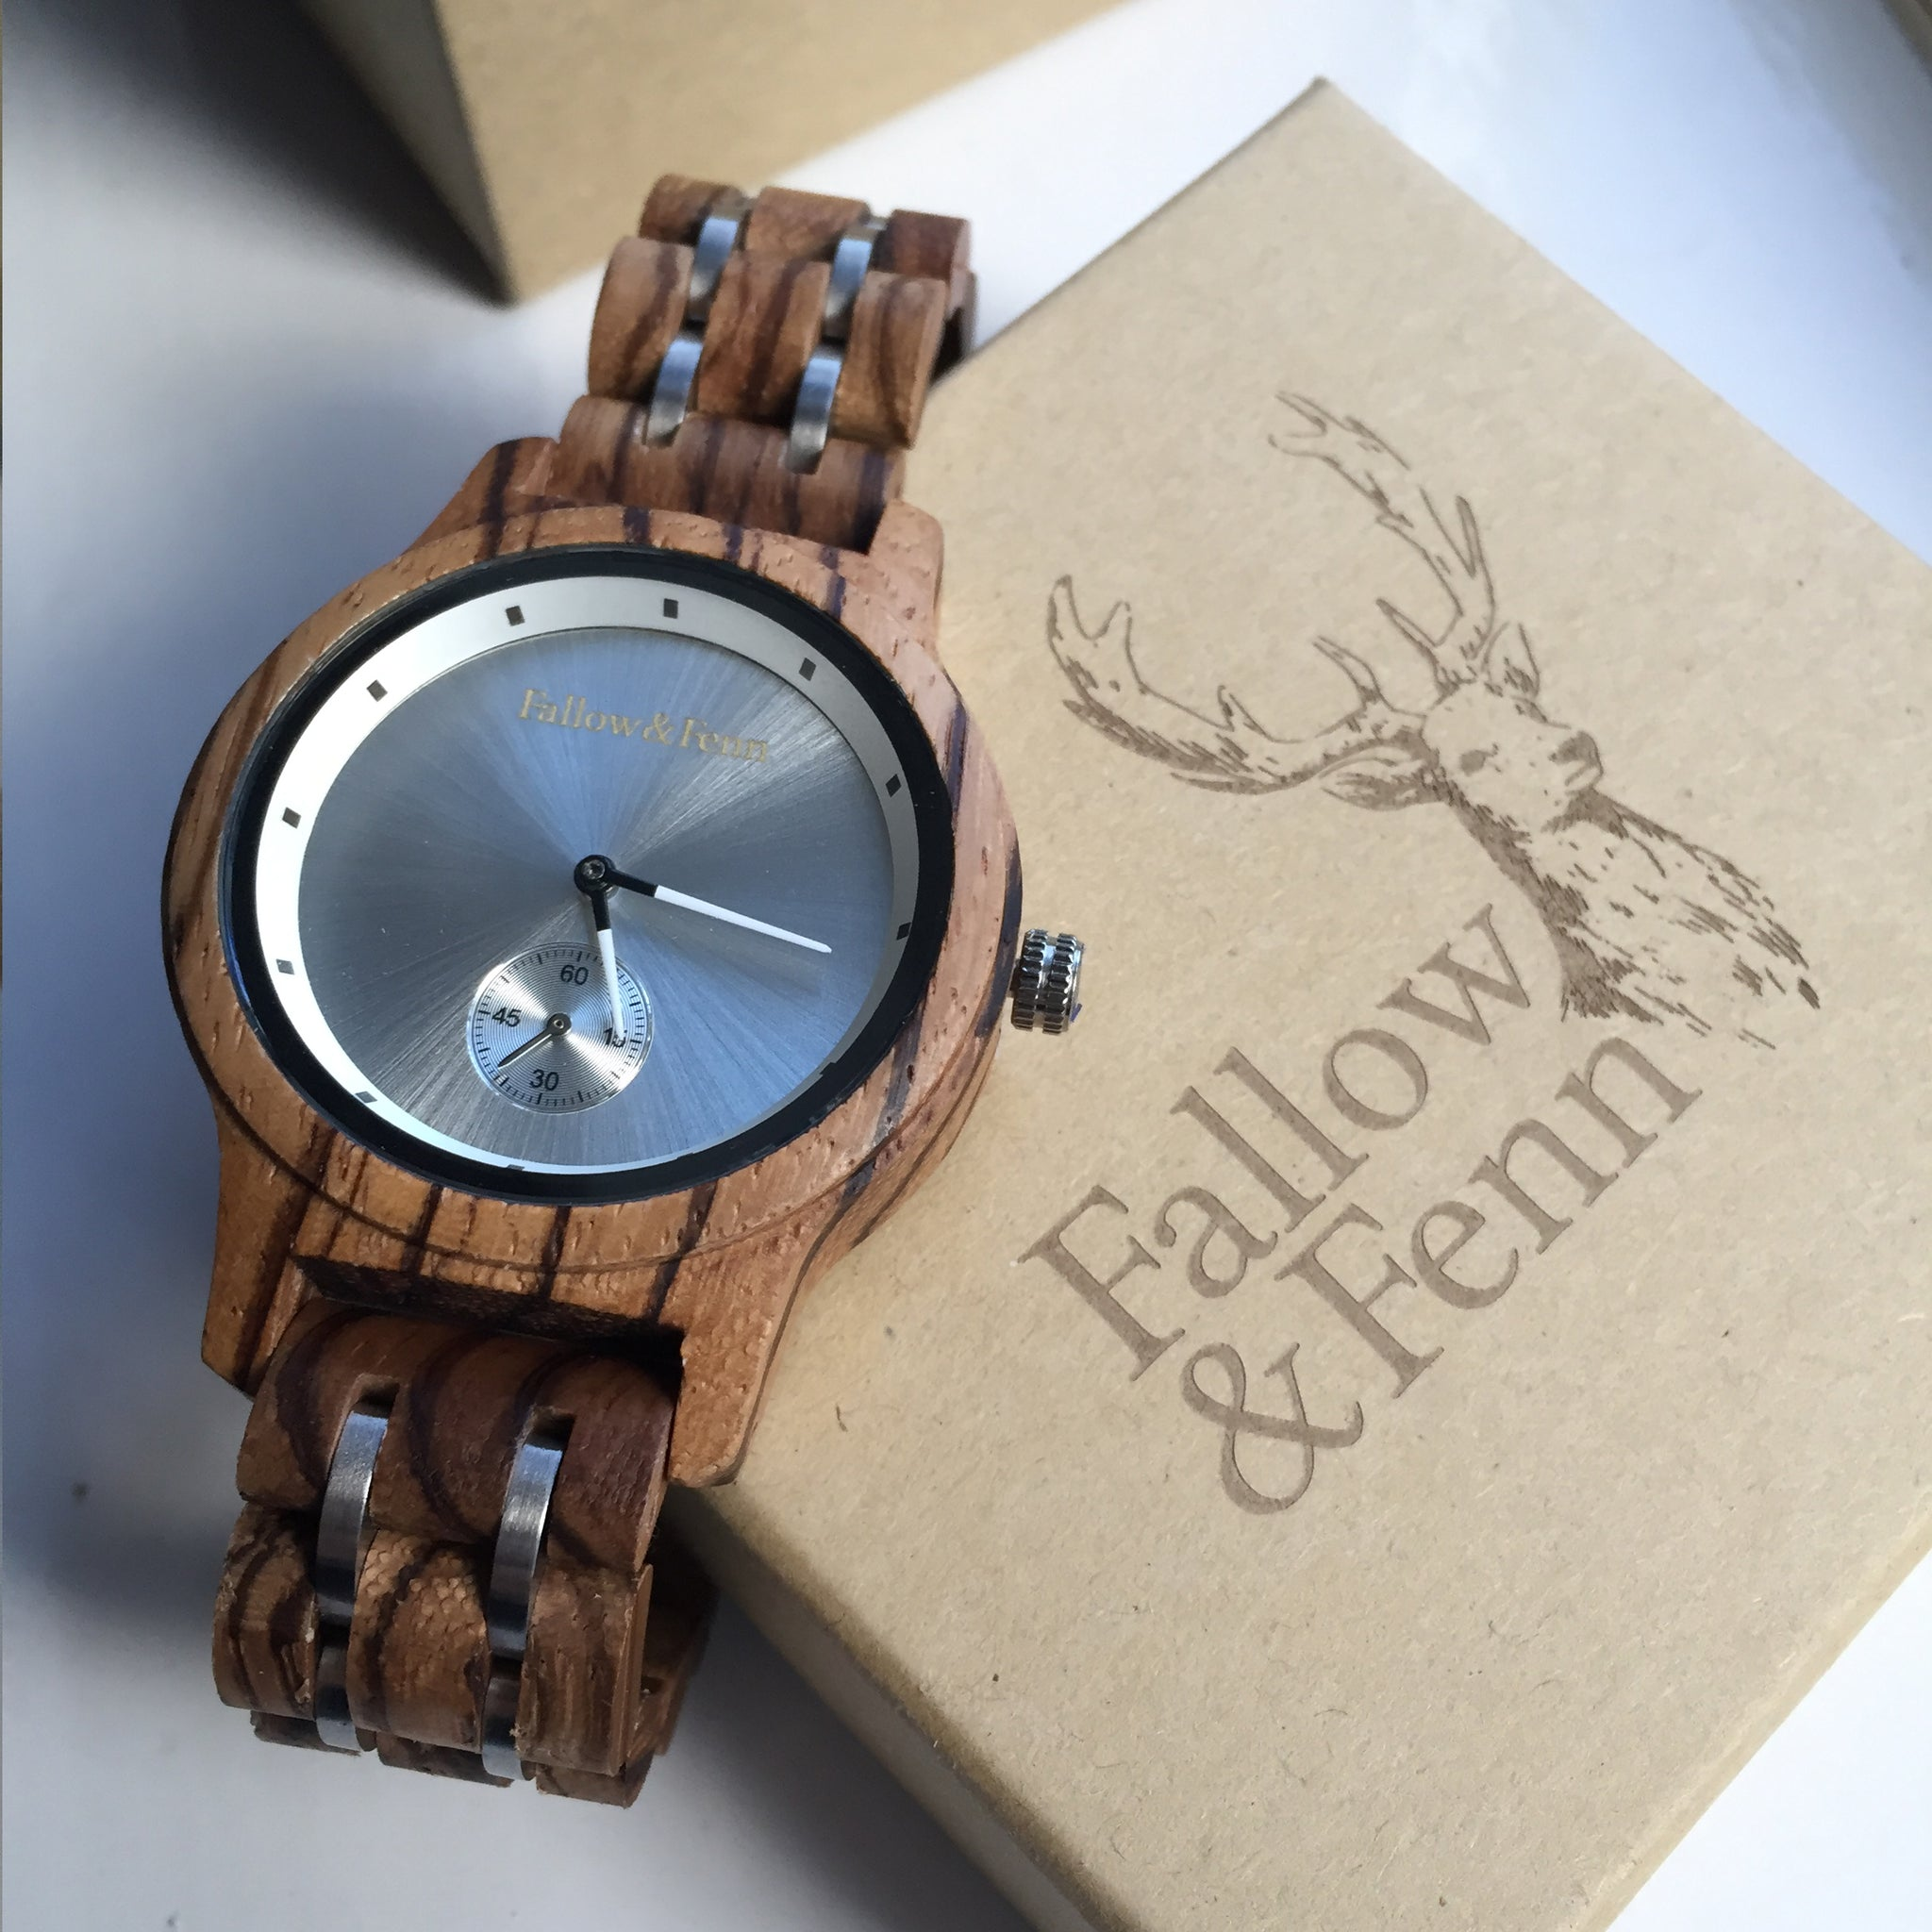 'Crickhowell' Unisex Wooden Watch With Stainless Steel Details